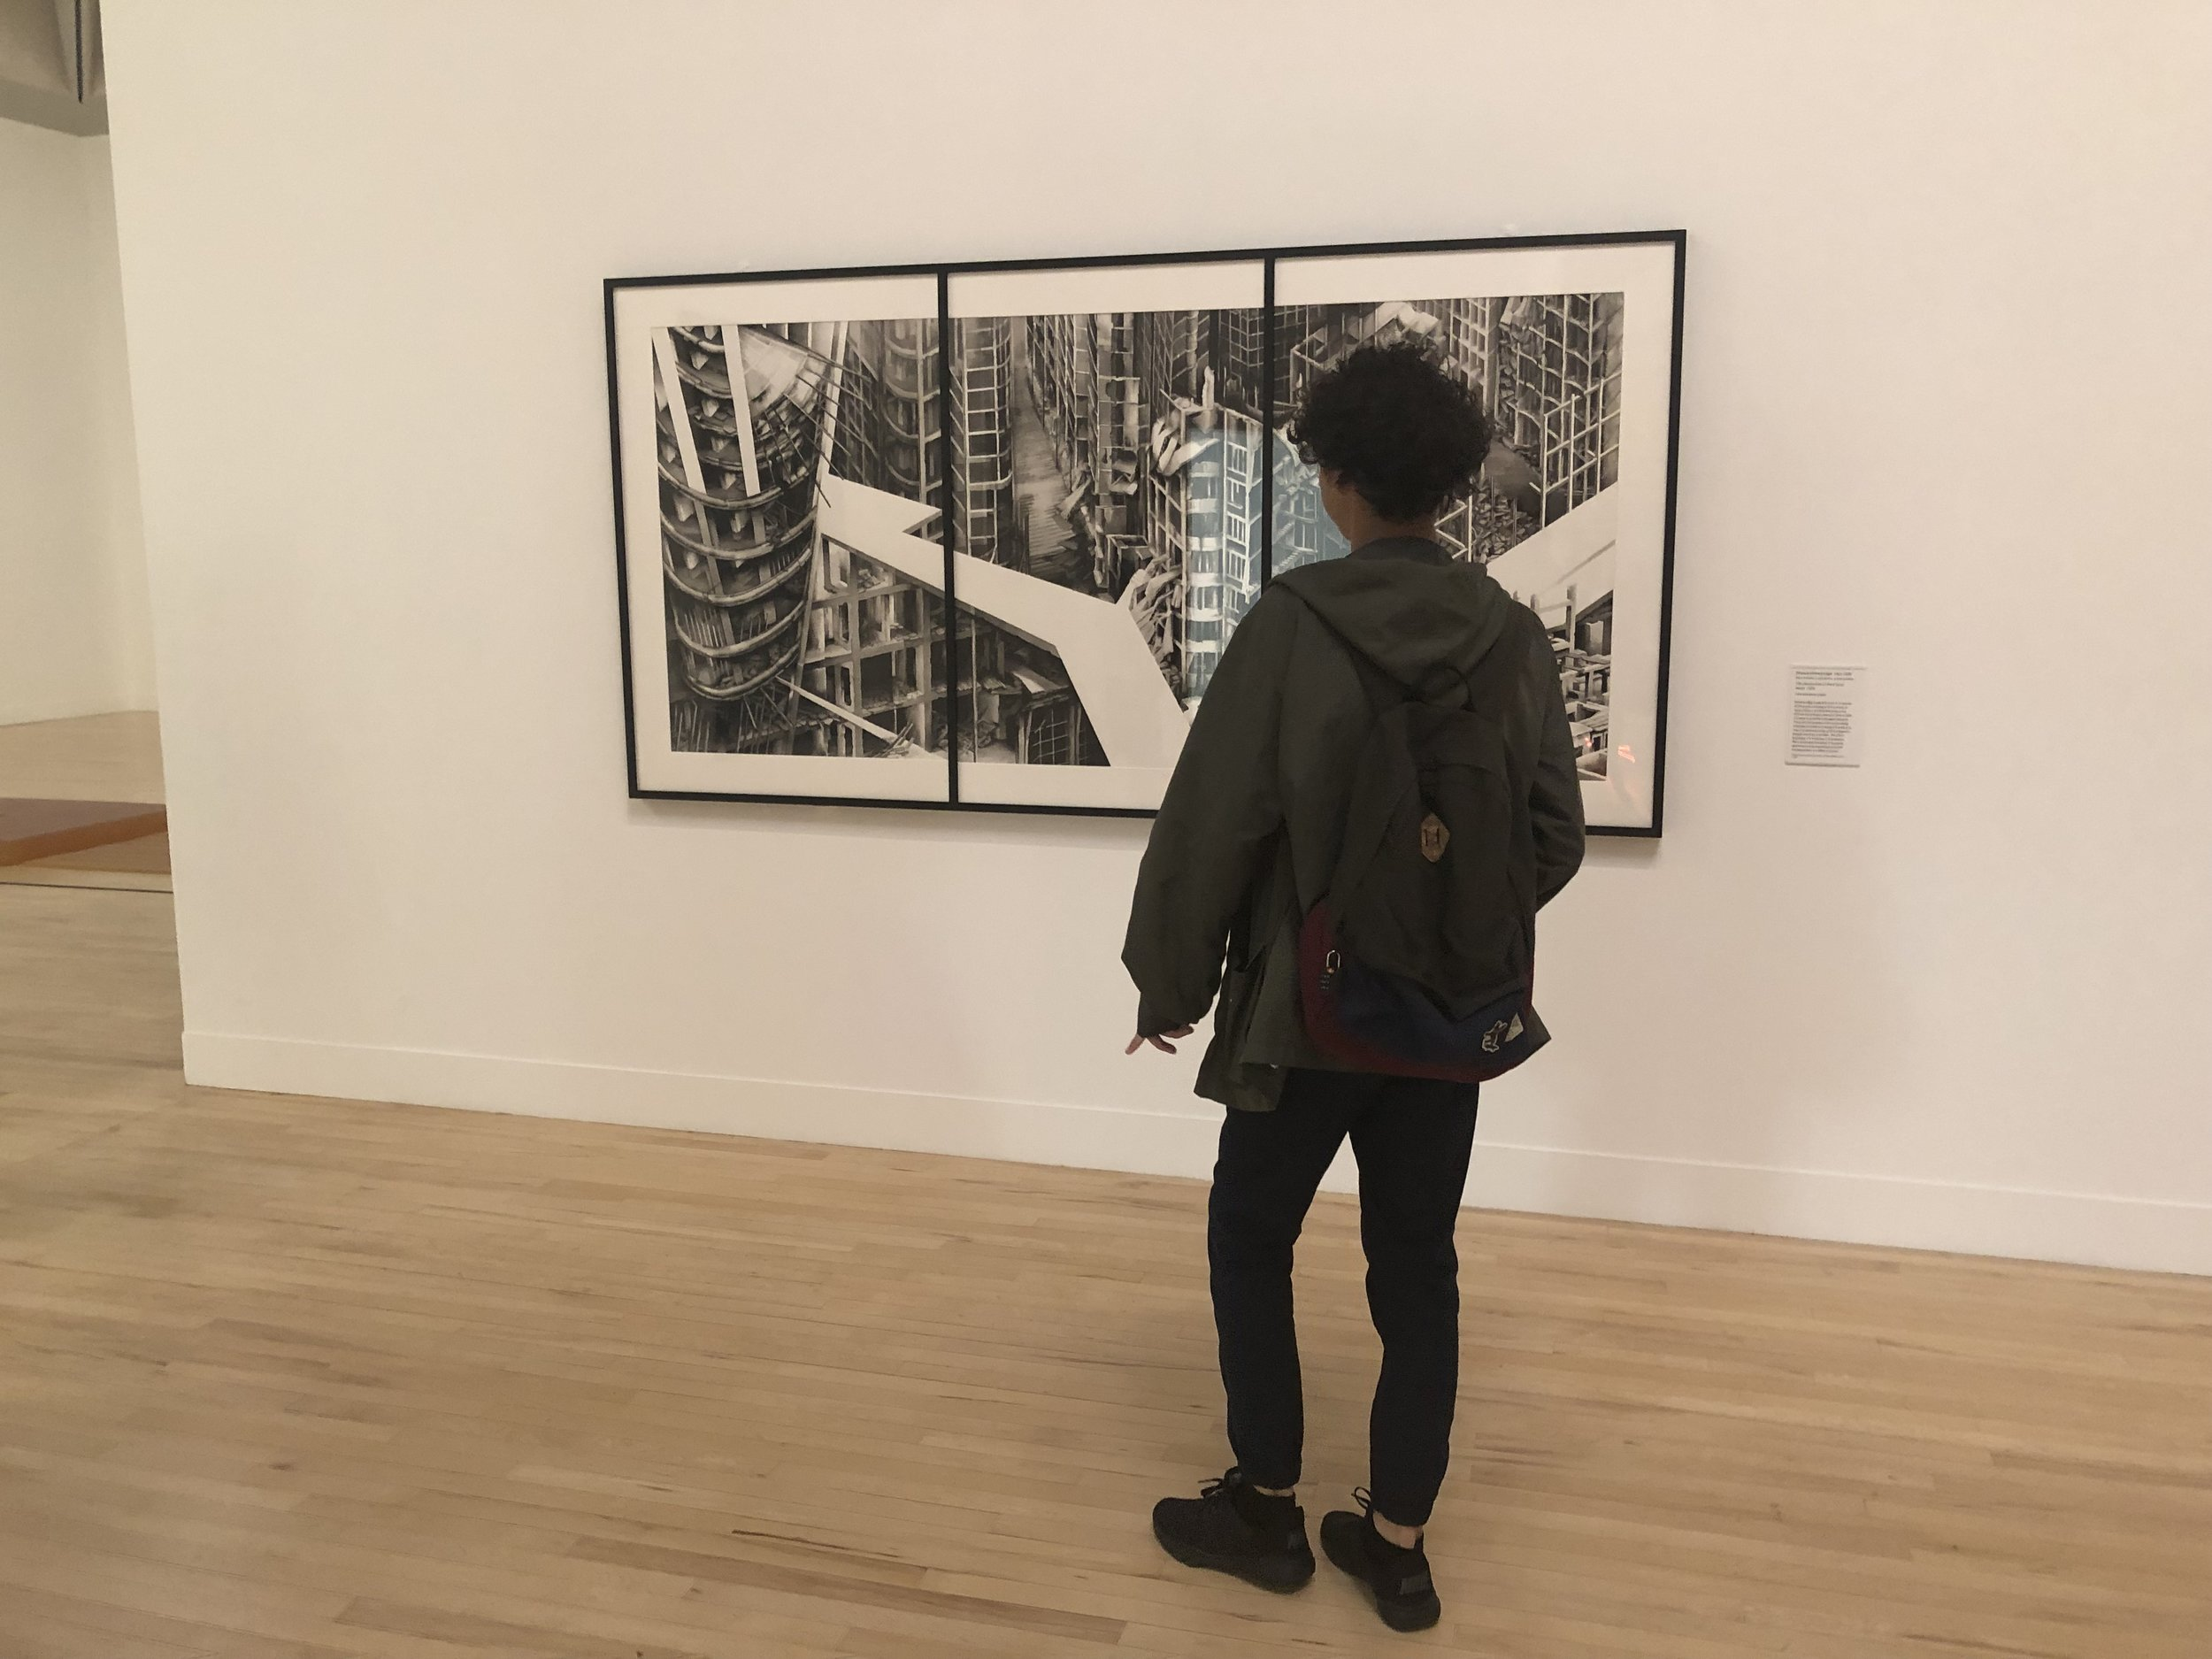 James seeing one of his assigned art works, Deanna Petherbridge's ink painting The Destruction of the City of Homs (2016), at the Tate Britain.